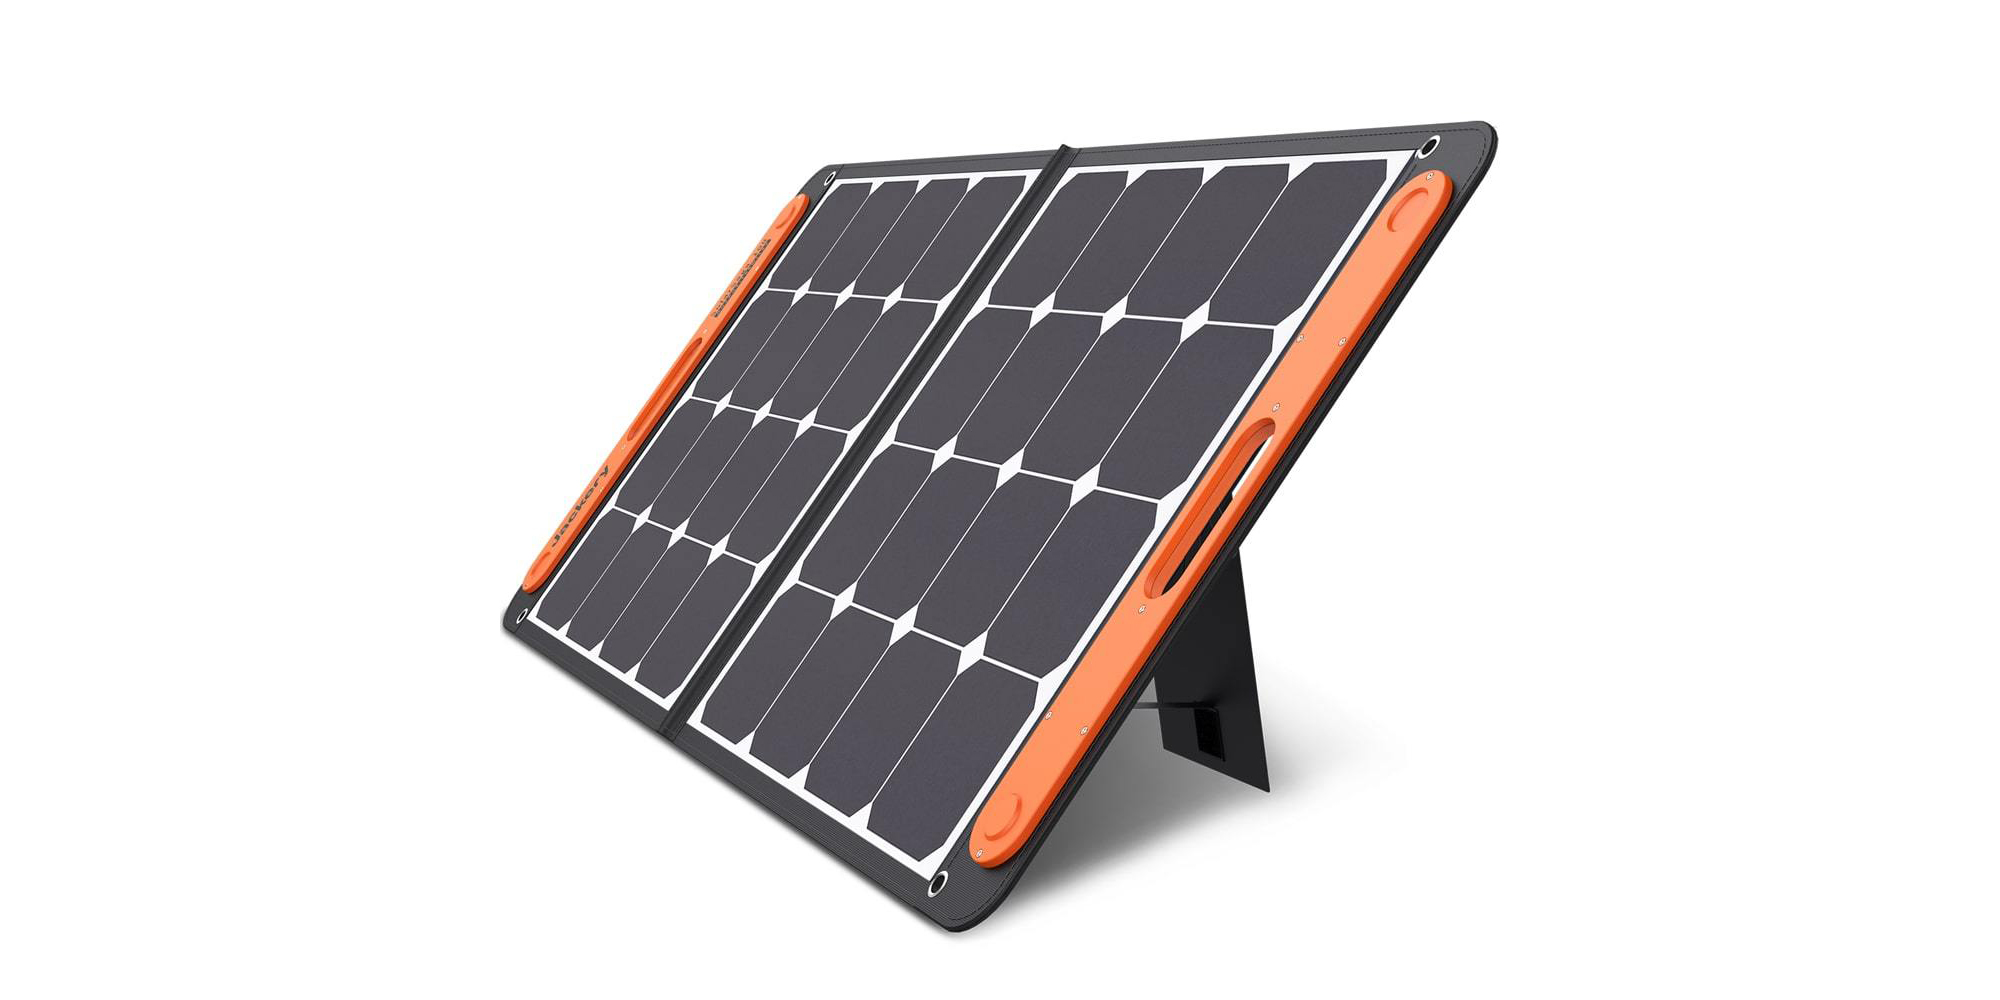 Jackery's solar generator system helps you collect and store more than enough juice for off-grid essentials 3